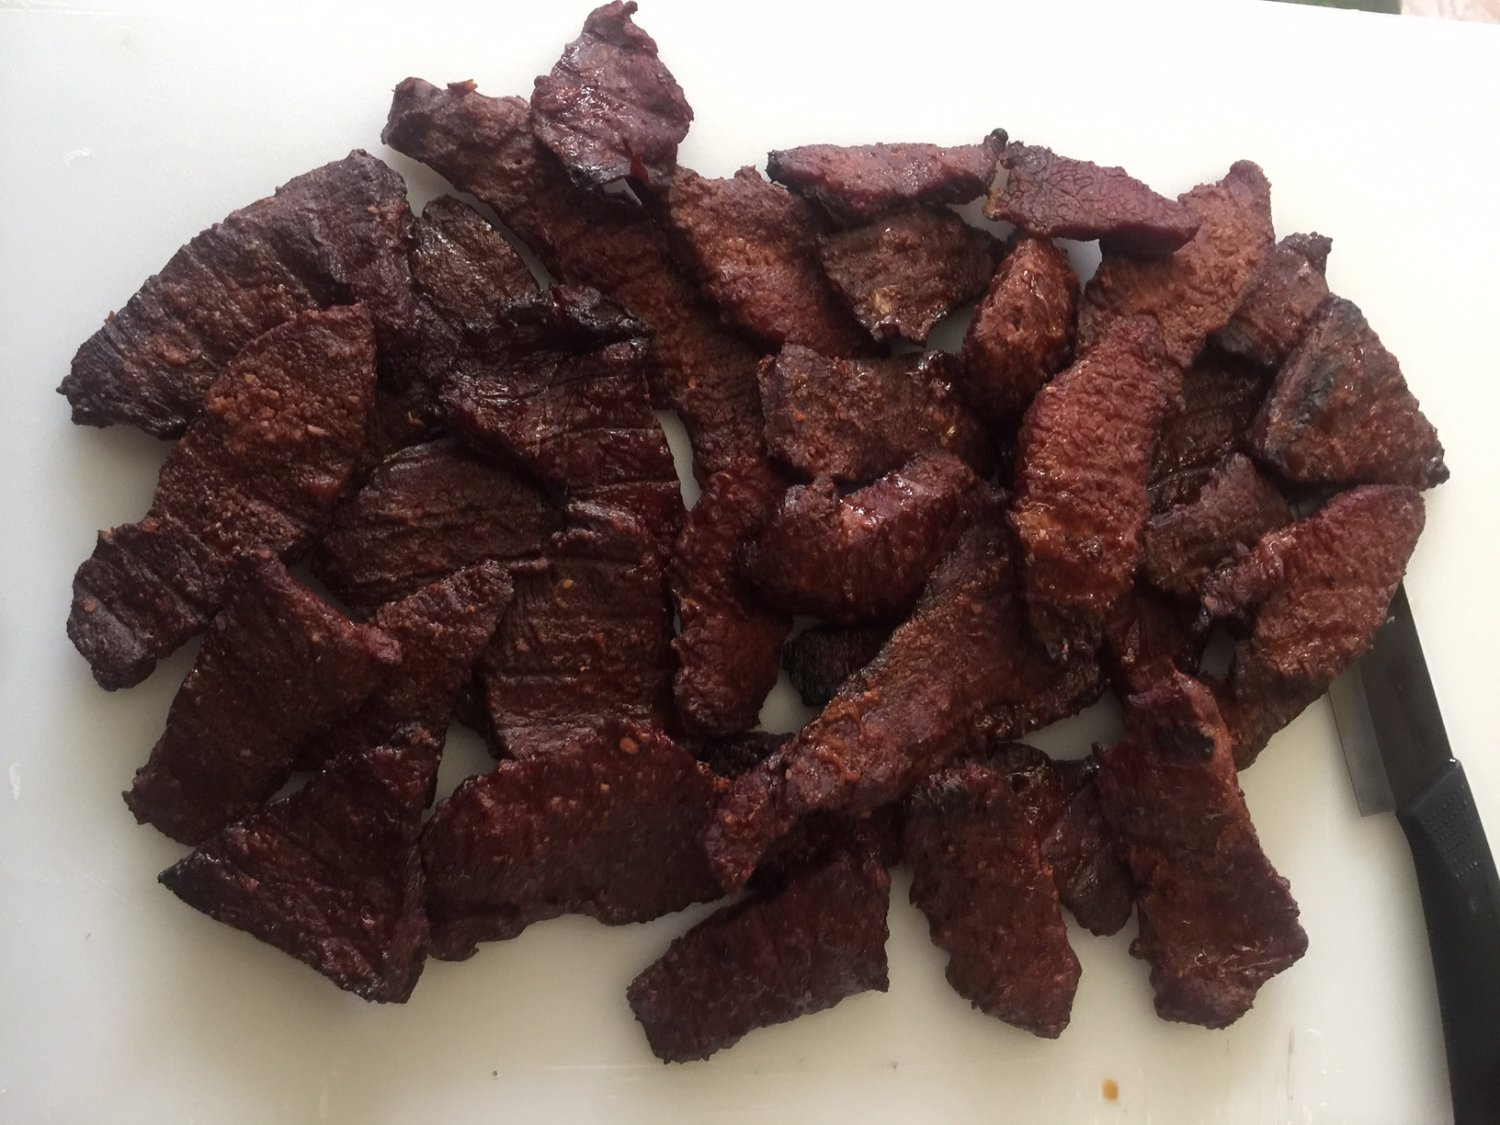 BBQ Smoked beef jerky 8 oz package Fathers Day Artisan Made Fresh